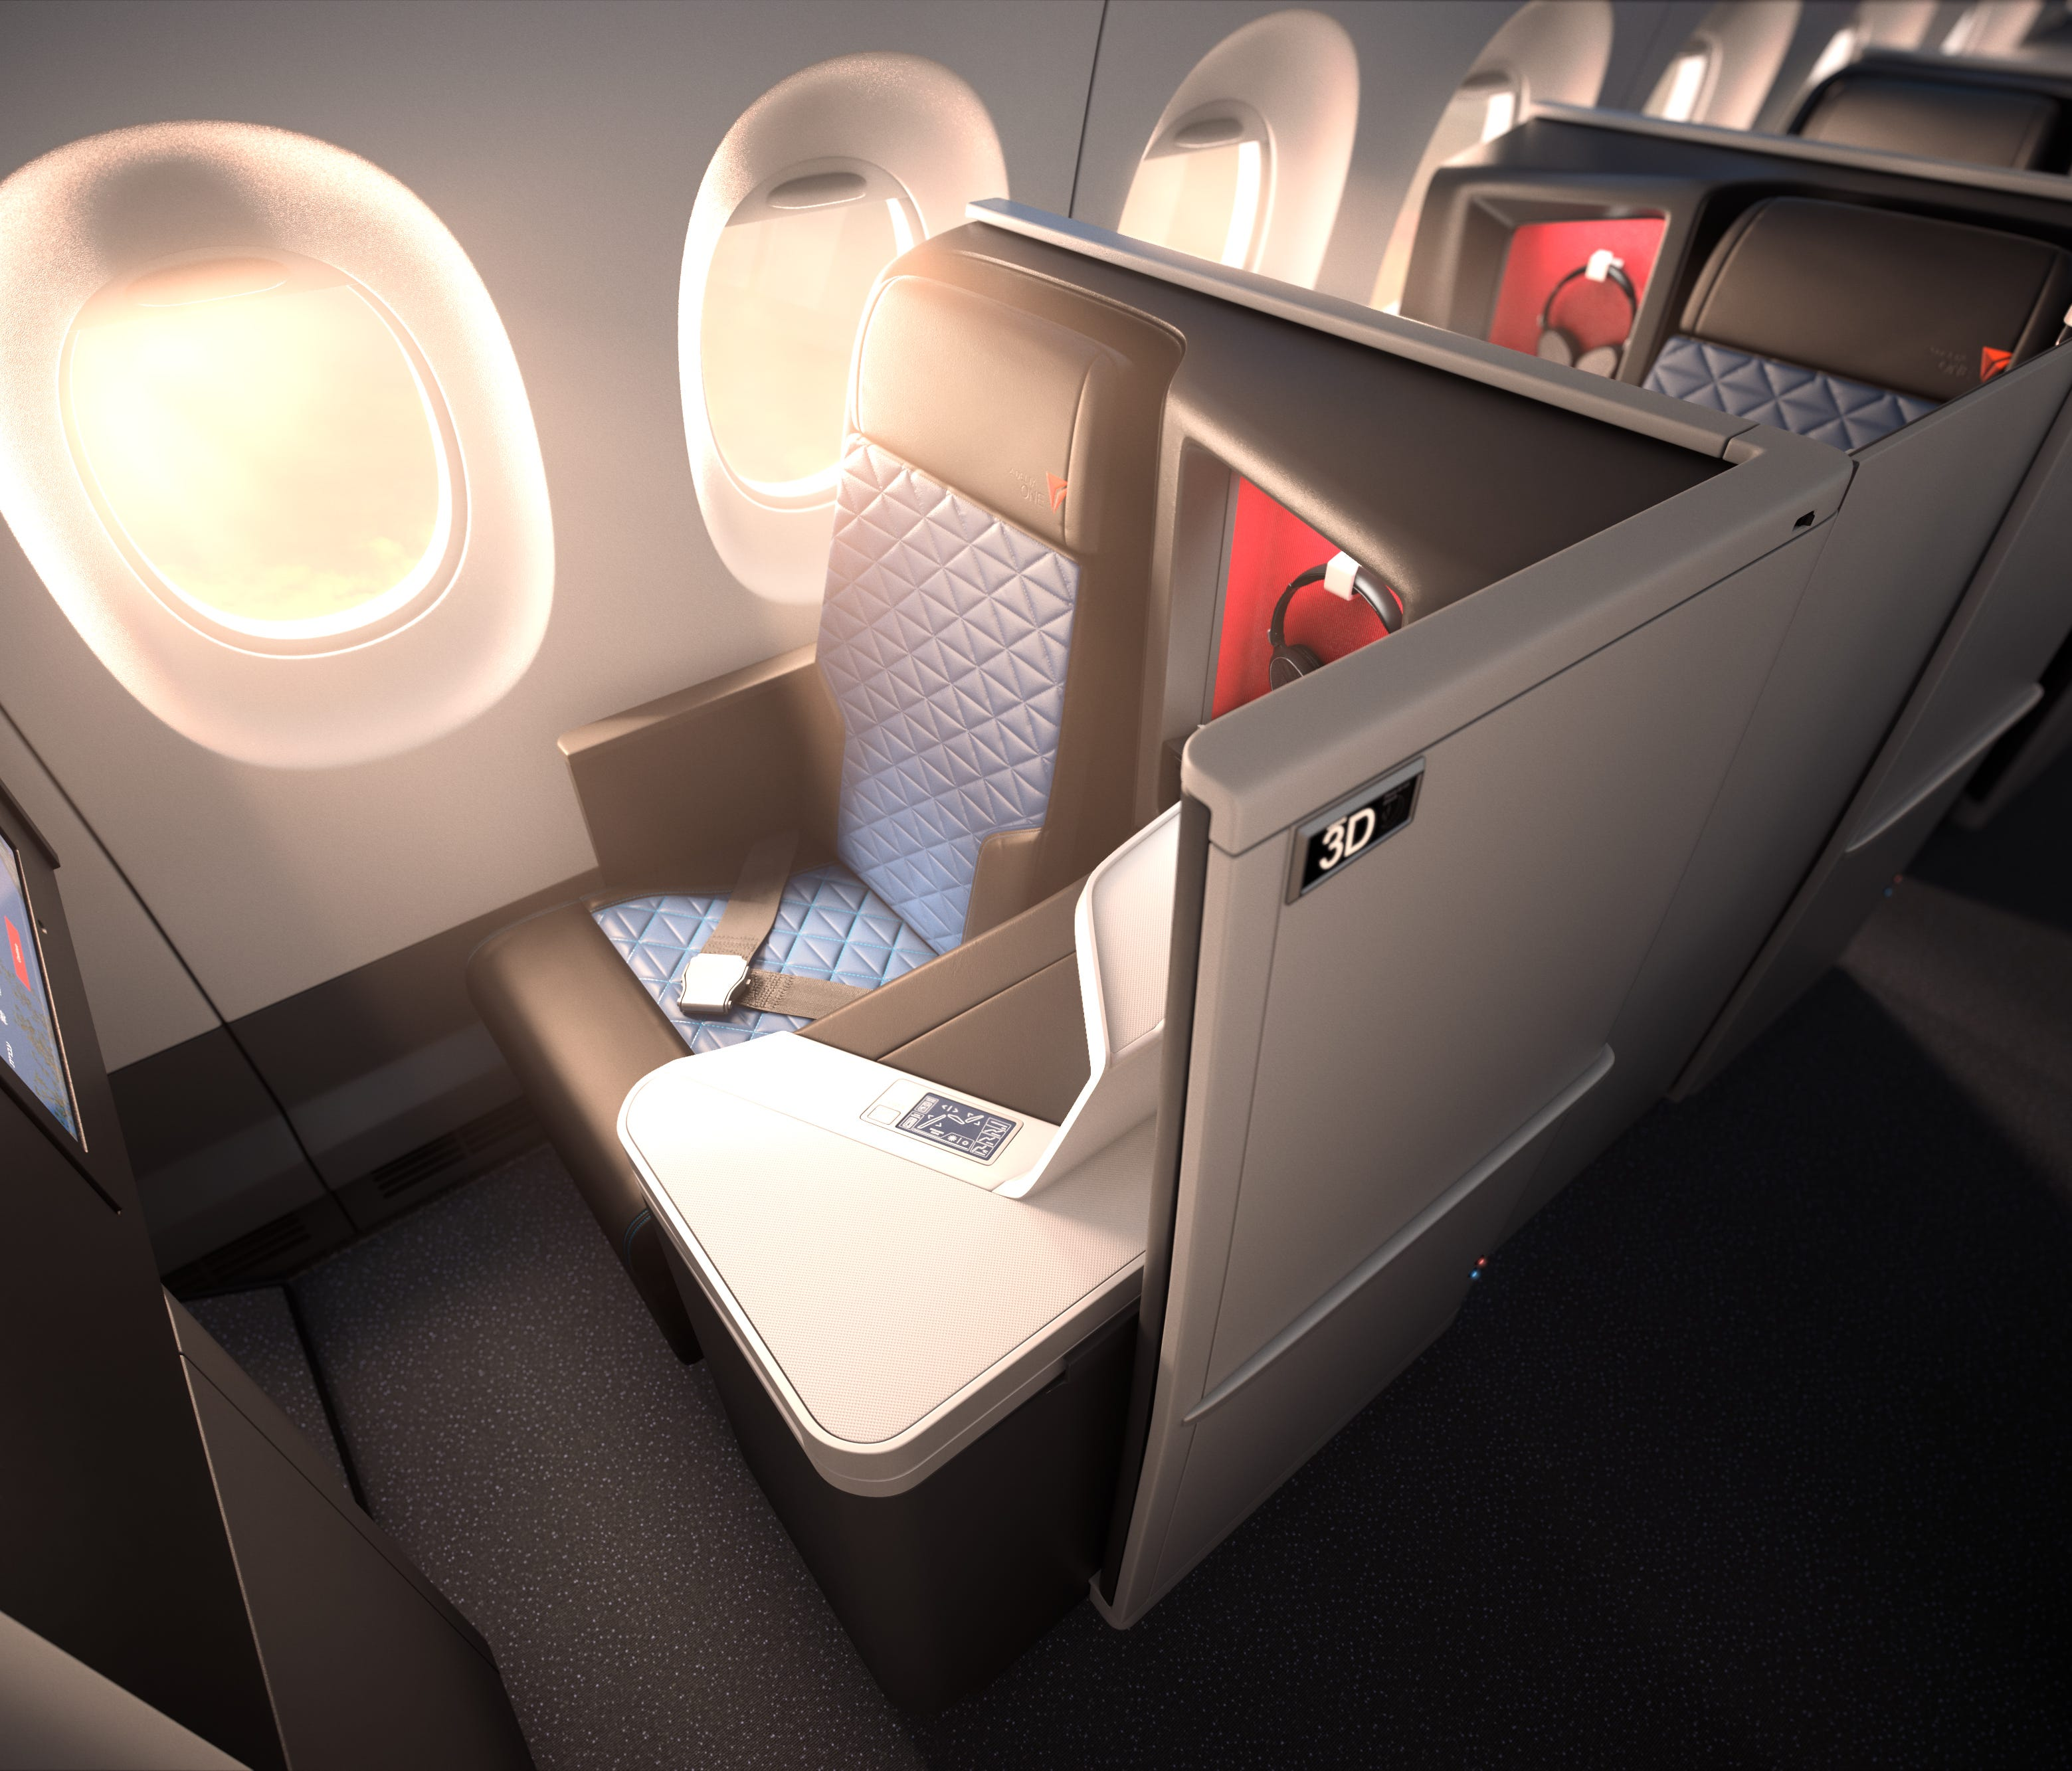 The Delta One suite will debut on Delta Air Lines' first Airbus 350 in fall 2017.